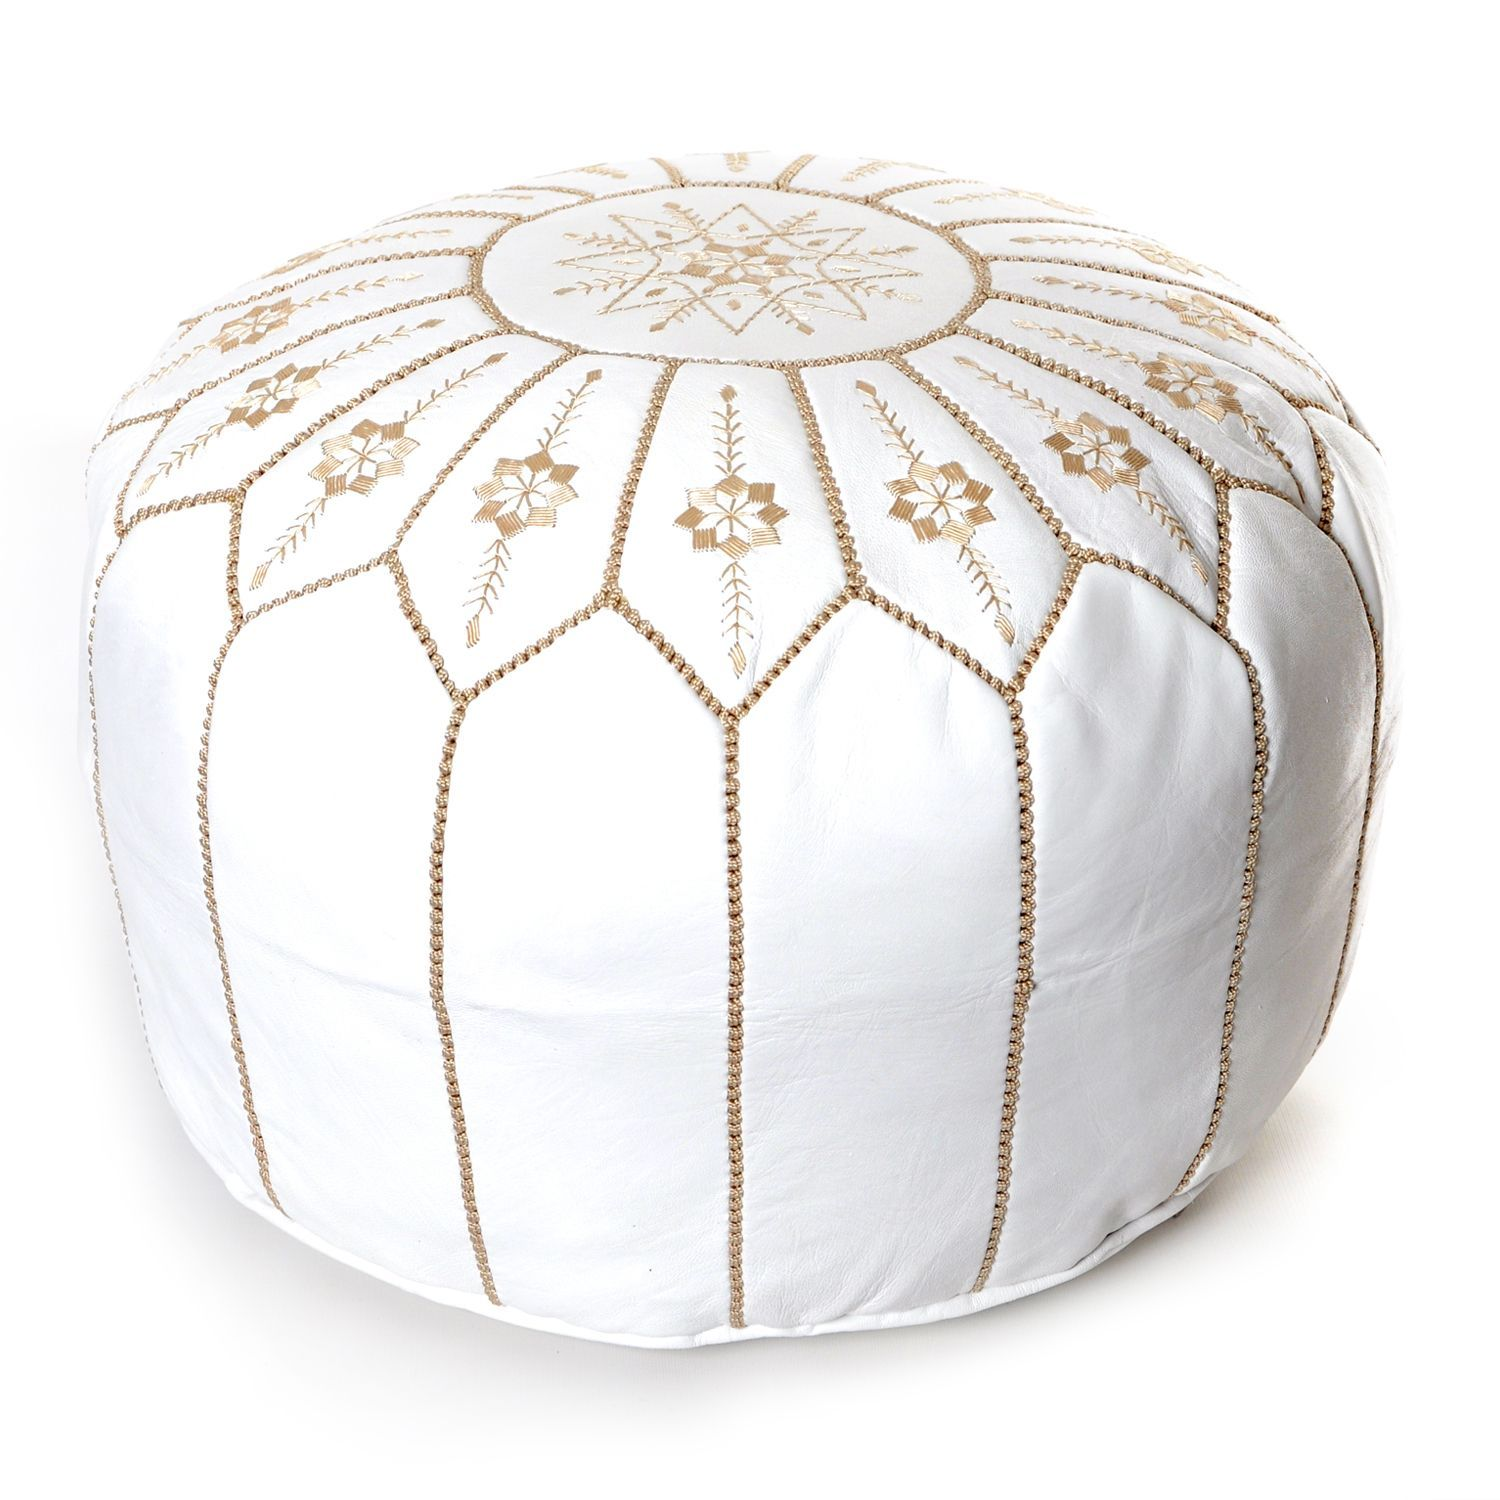 Surprising The Curated Nomad Aptos Moroccan Flower Leather Pouf Round Lamtechconsult Wood Chair Design Ideas Lamtechconsultcom